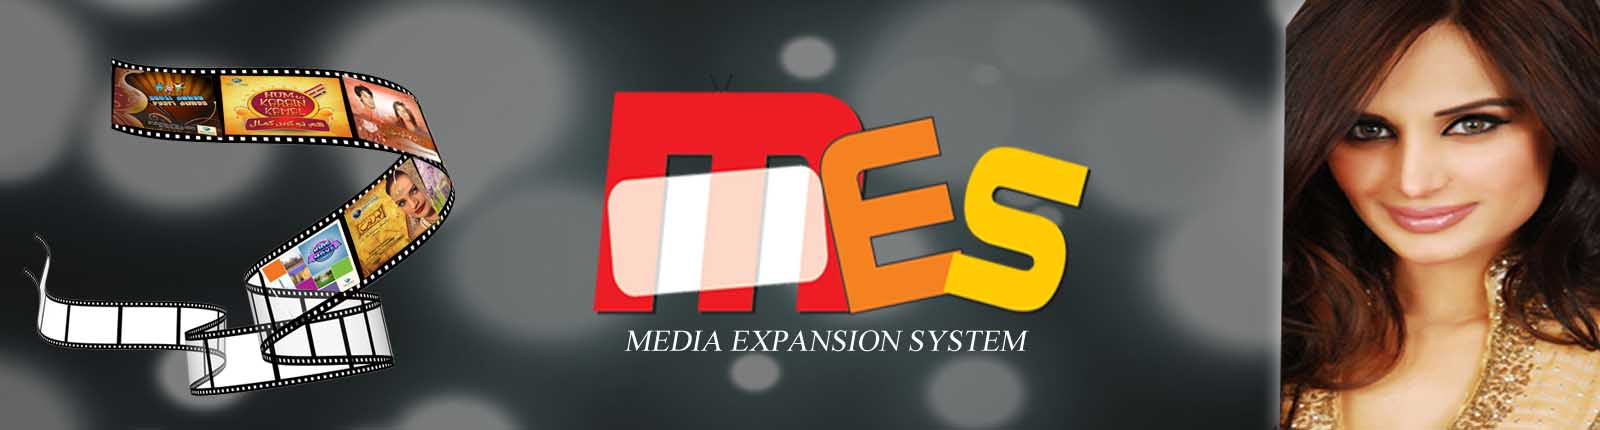 MEDIA EXPANSION SYSTEM